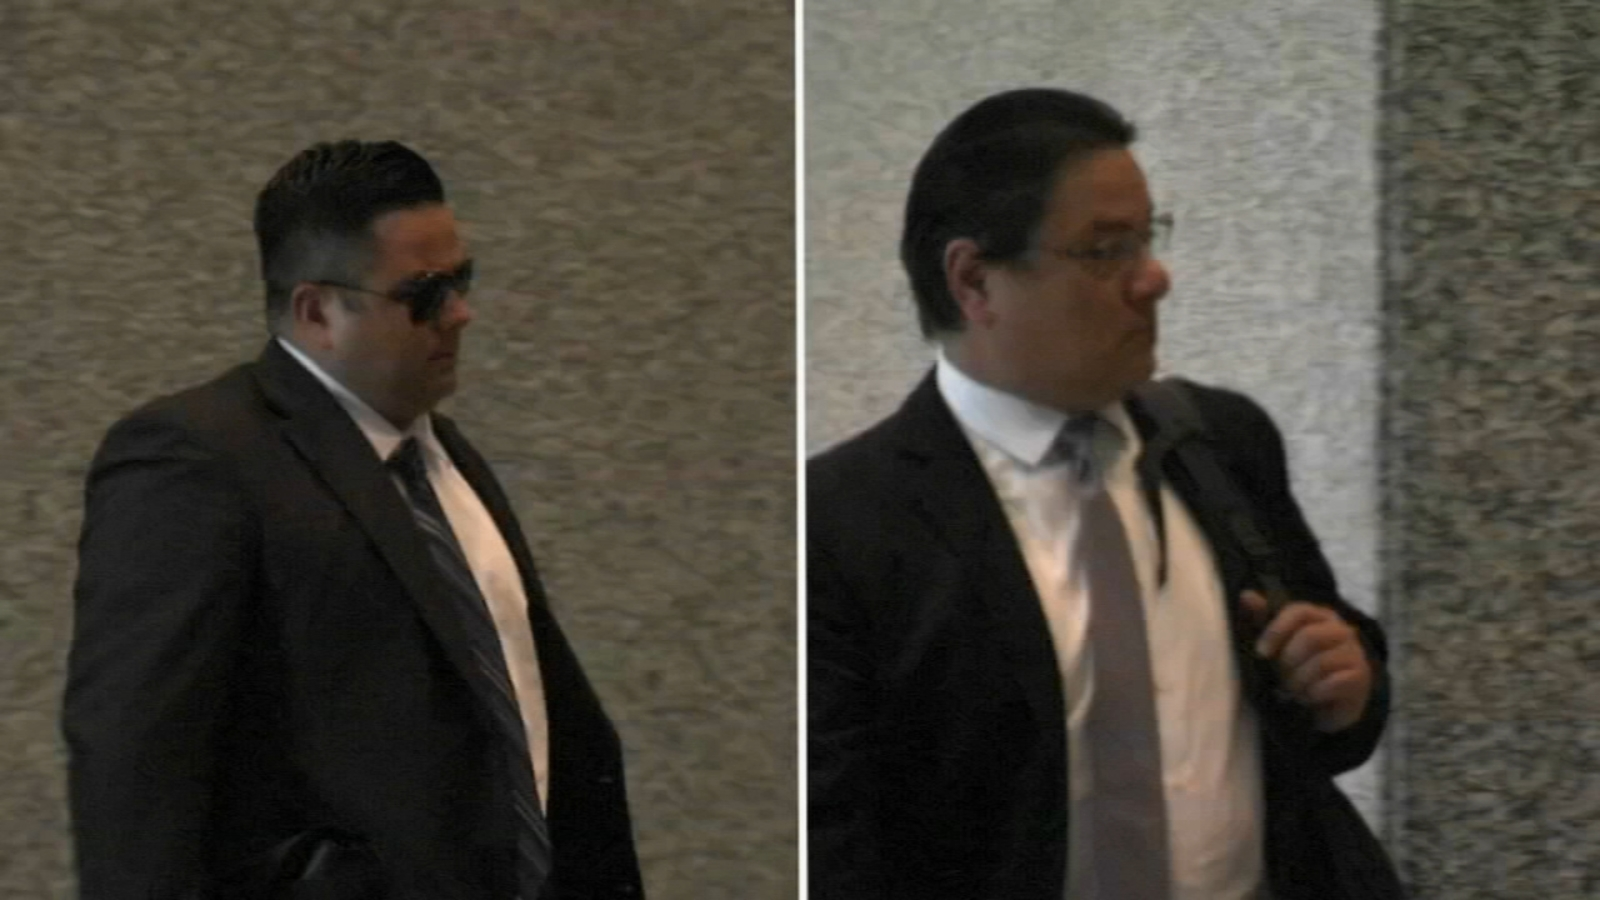 Jury finds Chicago police officers guilty of stealing drugs, cash